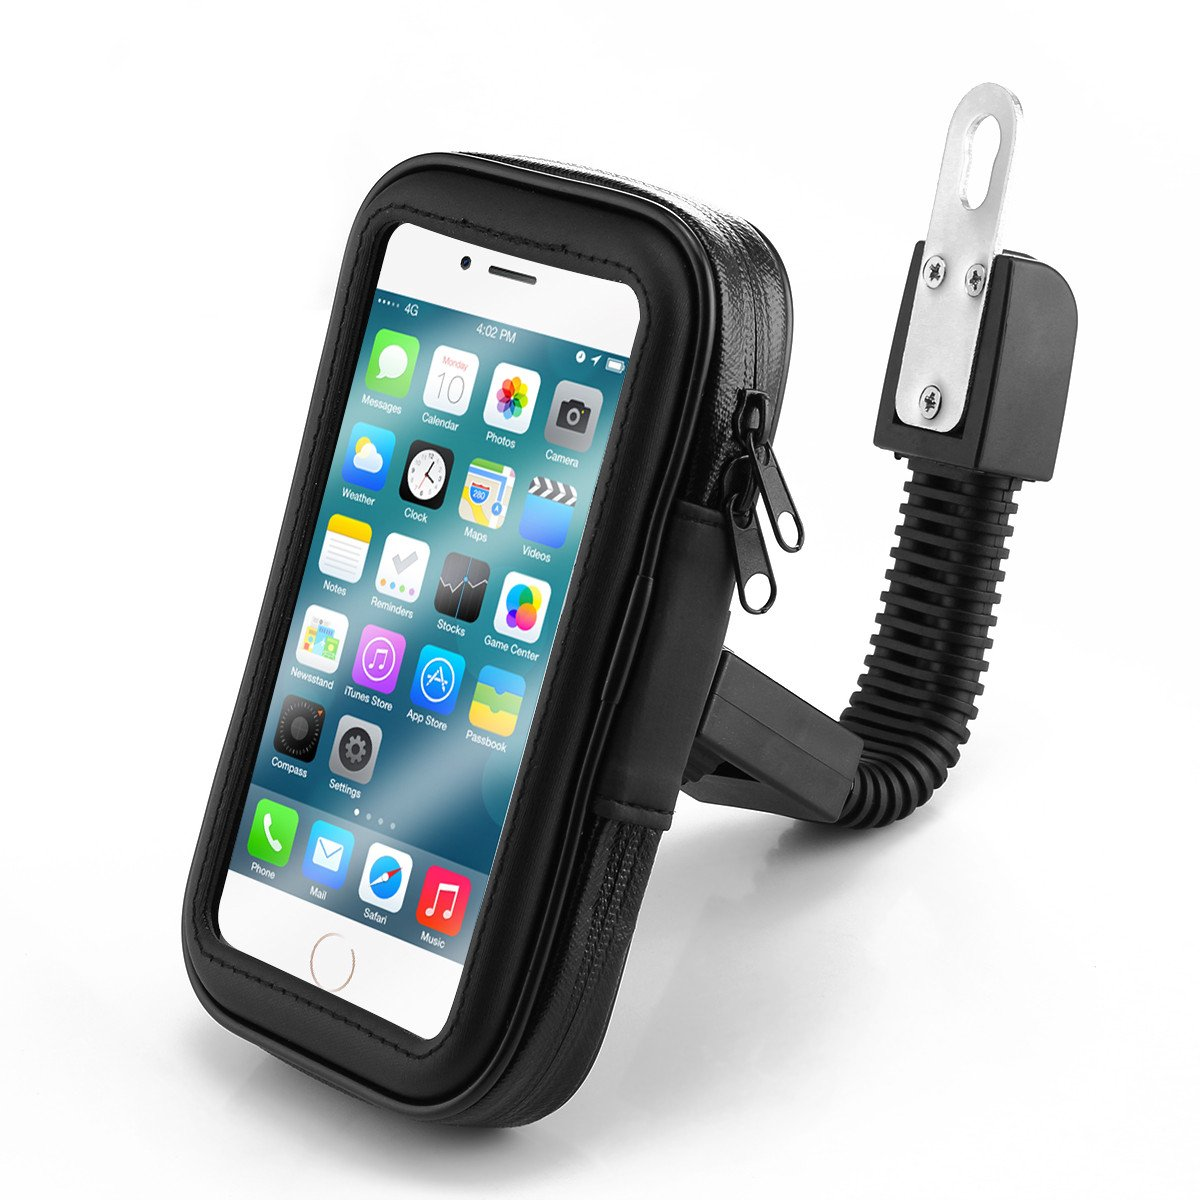 Powstro Universal Waterproof Motorcycle Bike Scooter Mobile Phone Holder Bag Case for iPhone 8 7 Samsung Support 4.7-6.3 Inch